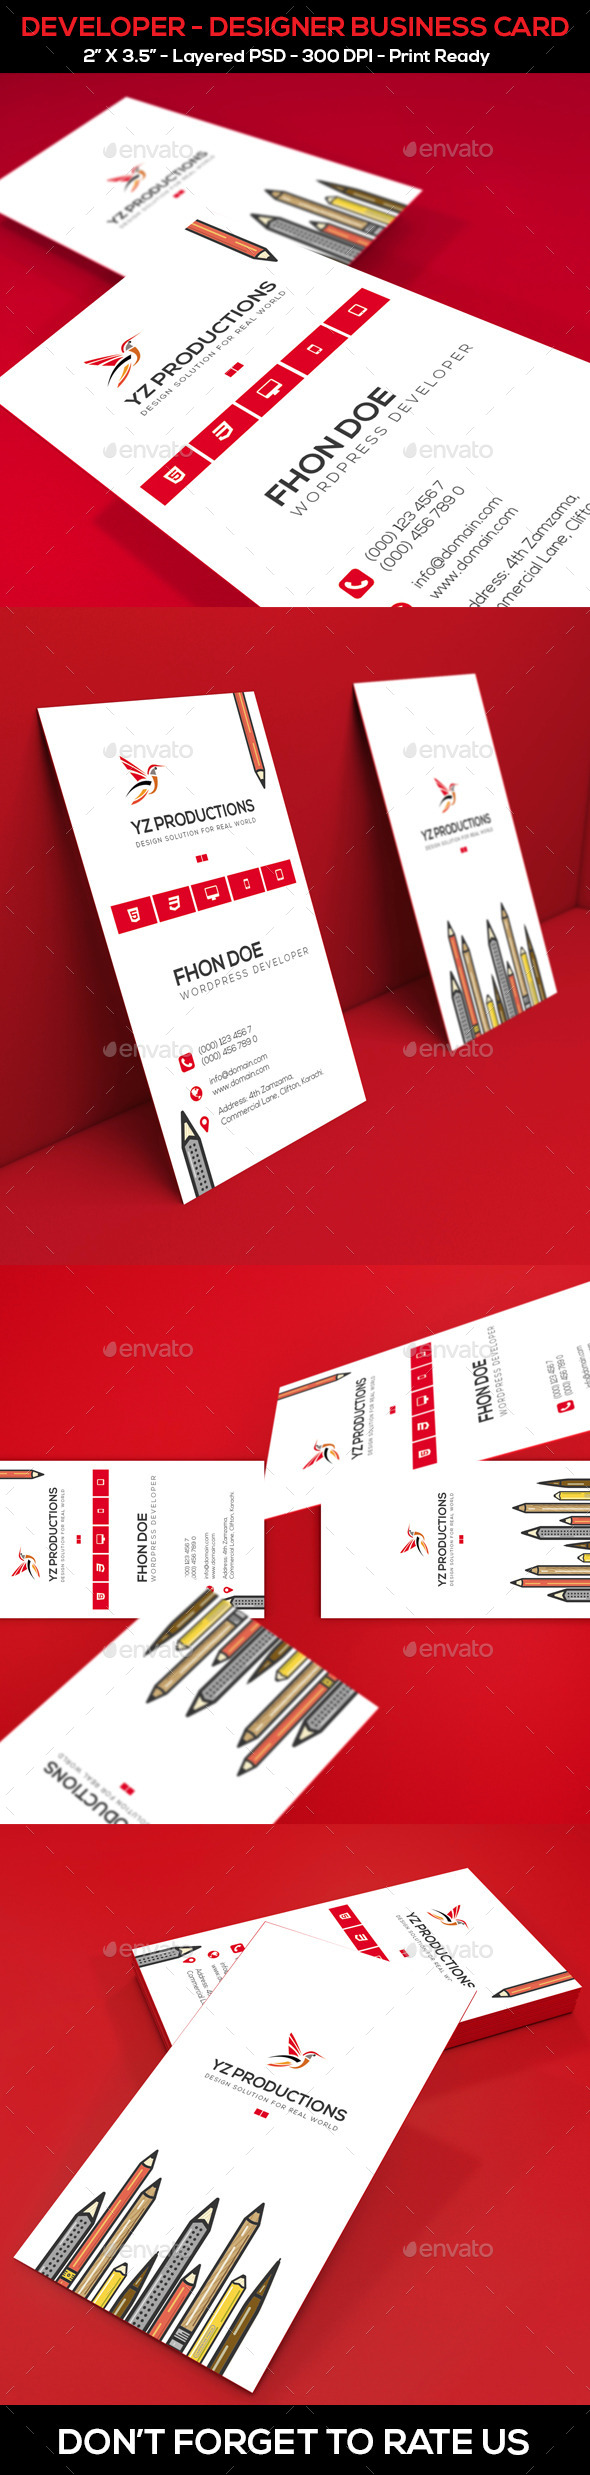 GraphicRiver Developer Designer Business Card 9996122